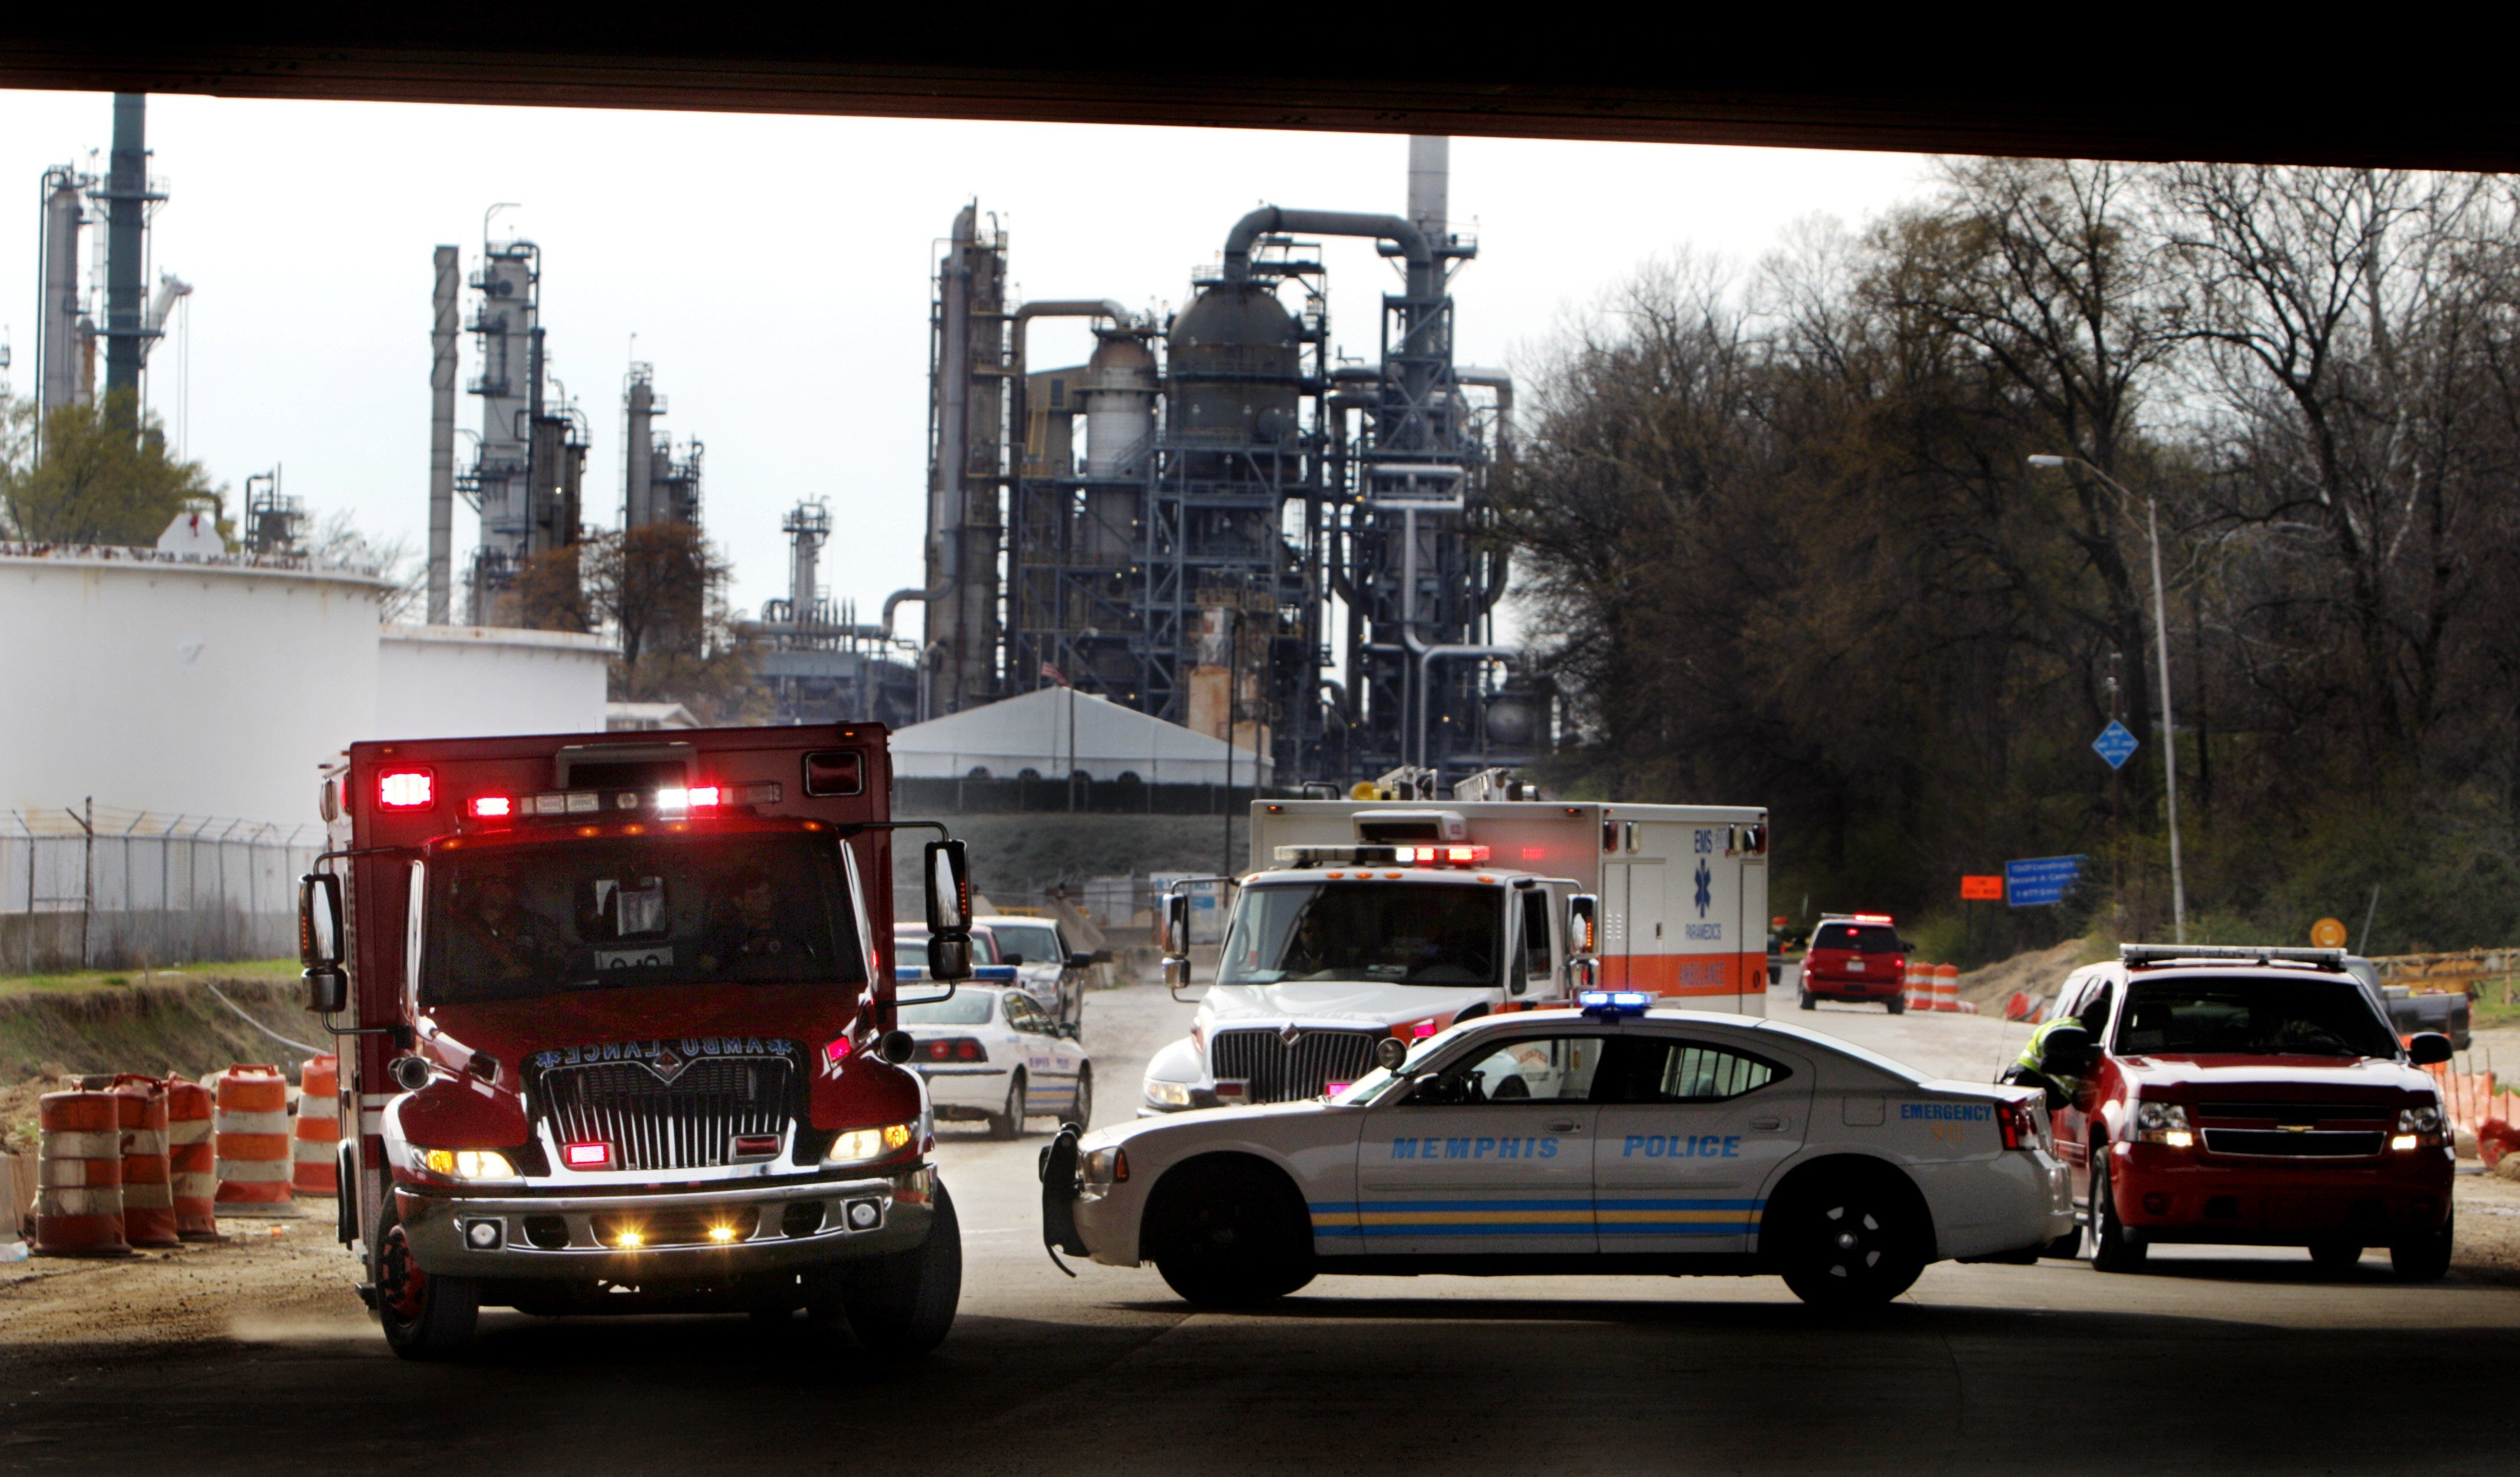 March 6, 2012 -  A pair of ambulances pull out of the Valero oil refinery on Mallory following an explosion at the plant that critically injured three people. Vapors at the plant ignited, seriously burning three men, MFD officials said.